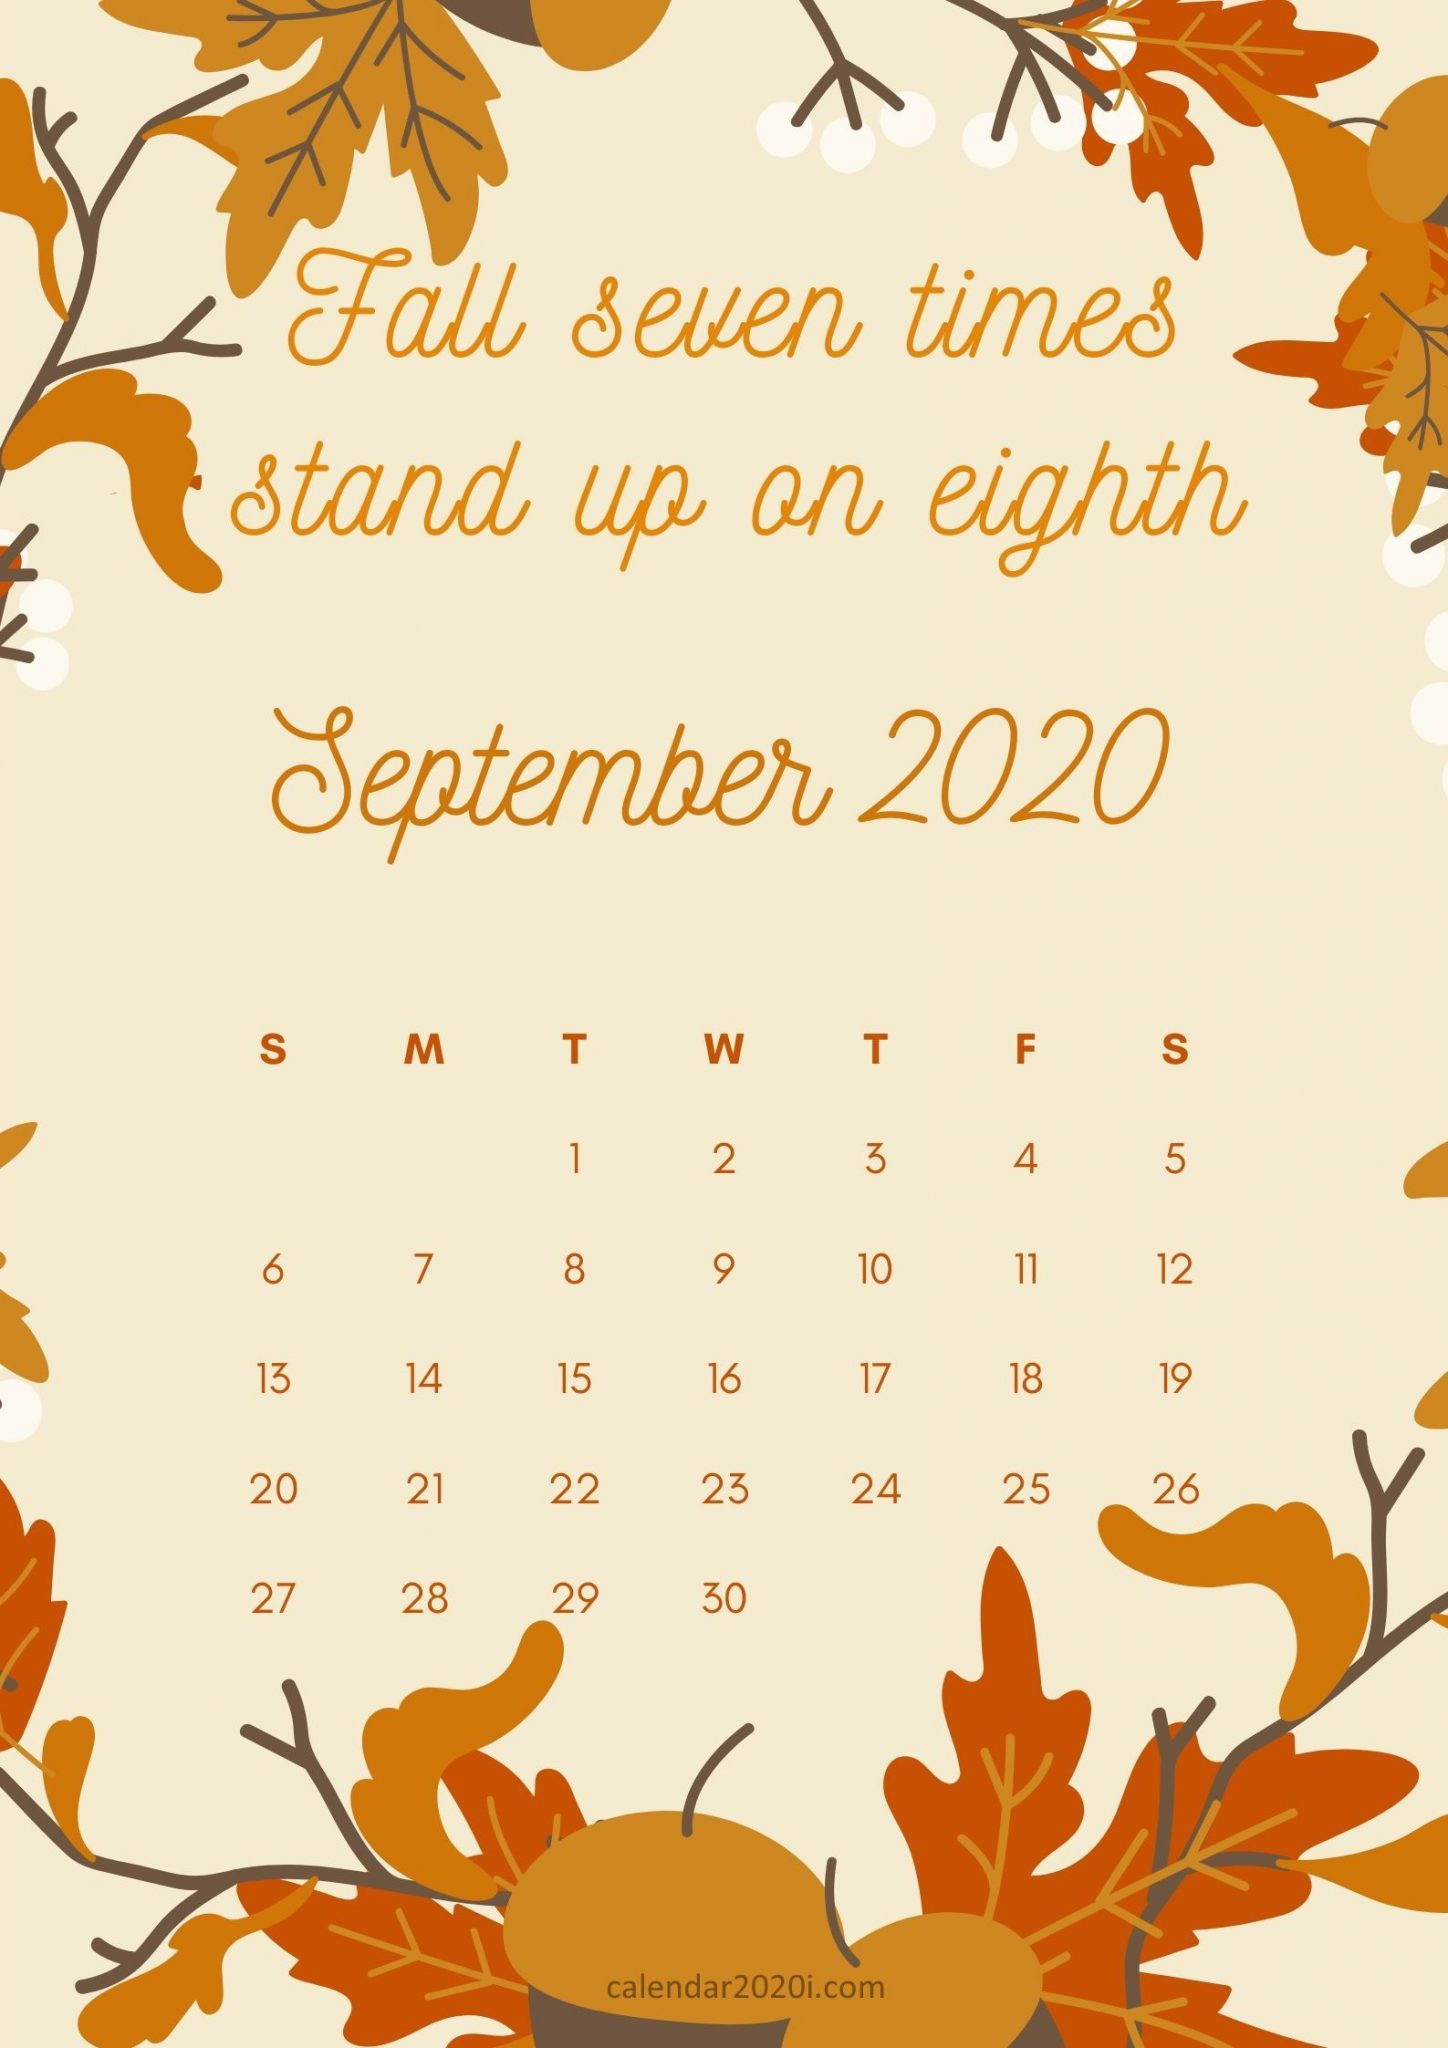 September 2020 Calendar with Sayings